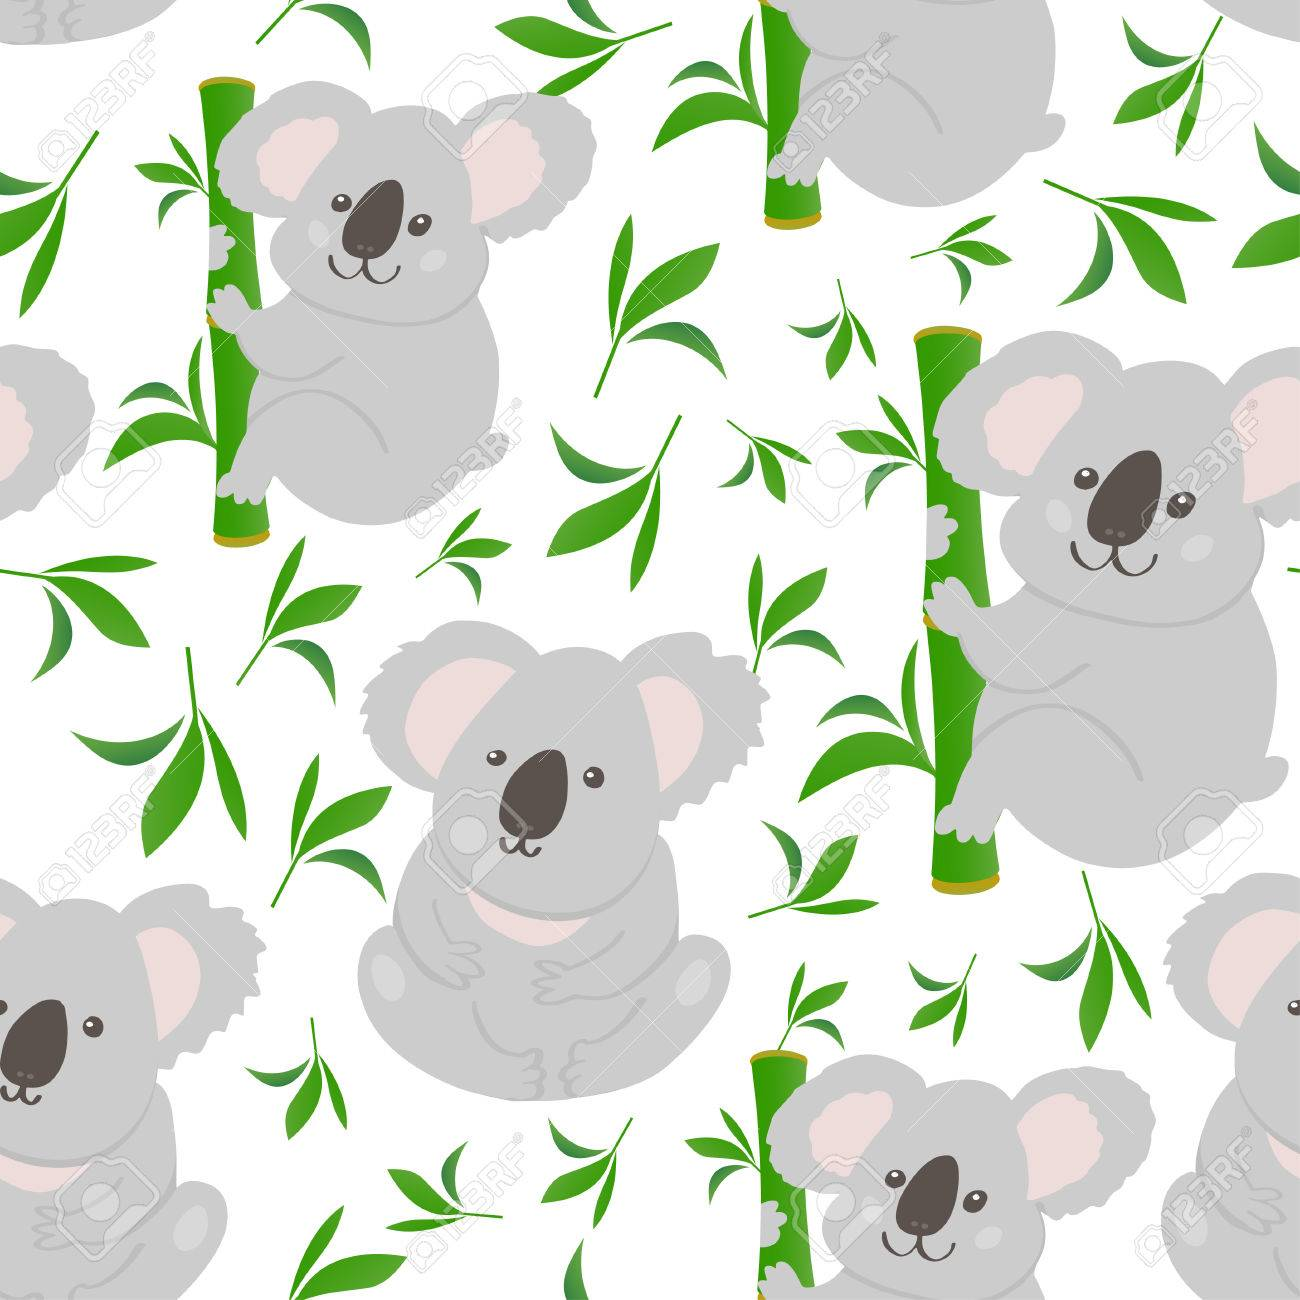 Top Wallpaper Koala Cartoon - 73967275-cute-bear-koala-doodle-seamless-pattern-vector-background-with-koalas-can-be-used-for-baby-taxtile-t  Best Photo Reference_775832   .jpg